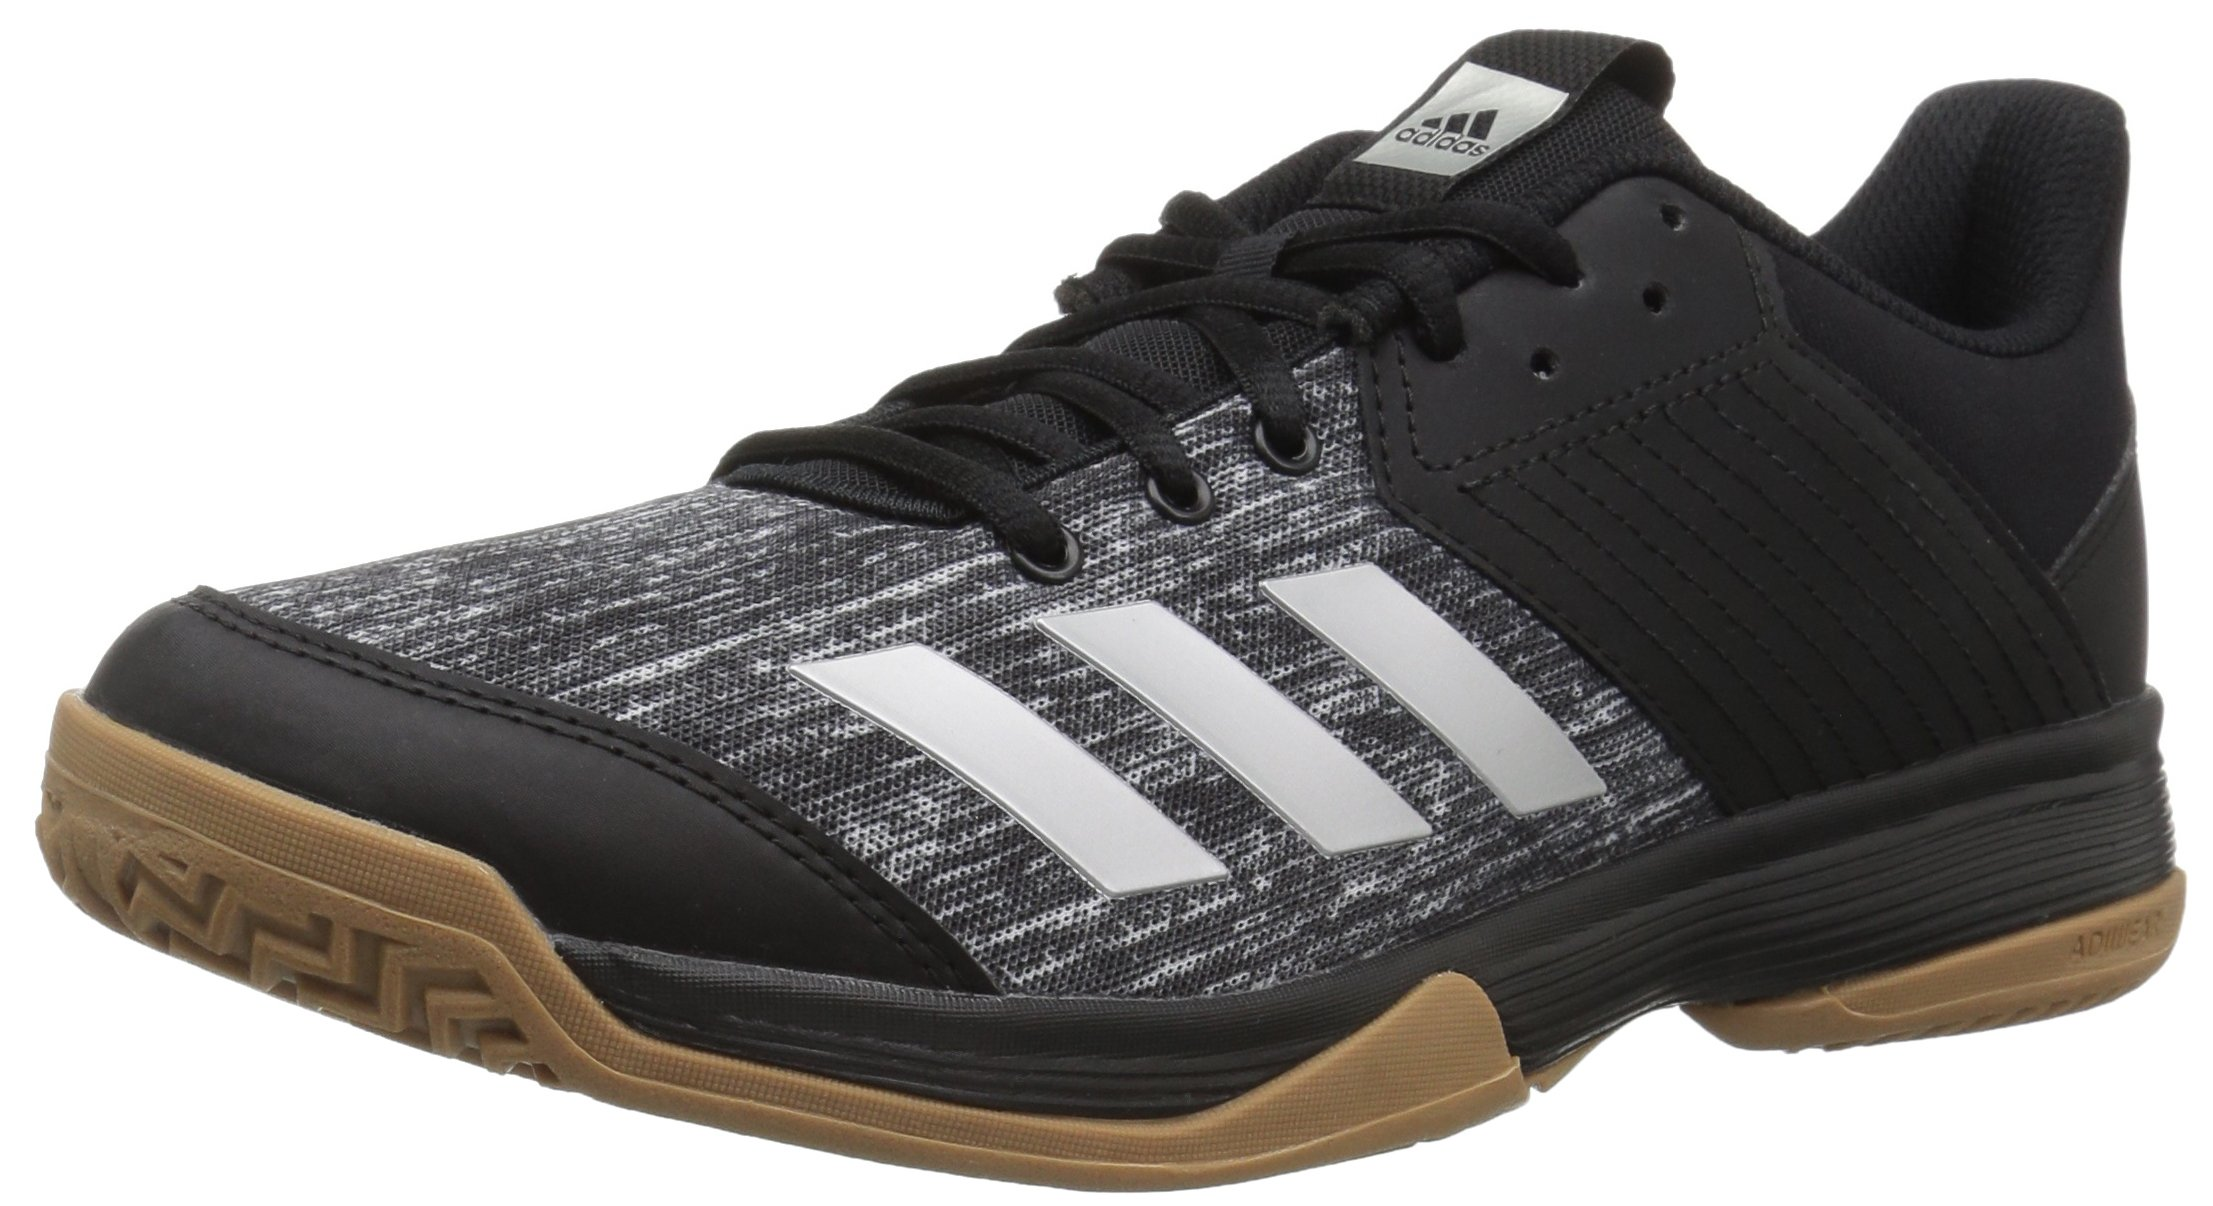 3a39d2a97c4 Galleon - Adidas Women s Ligra 6 Volleyball Shoe